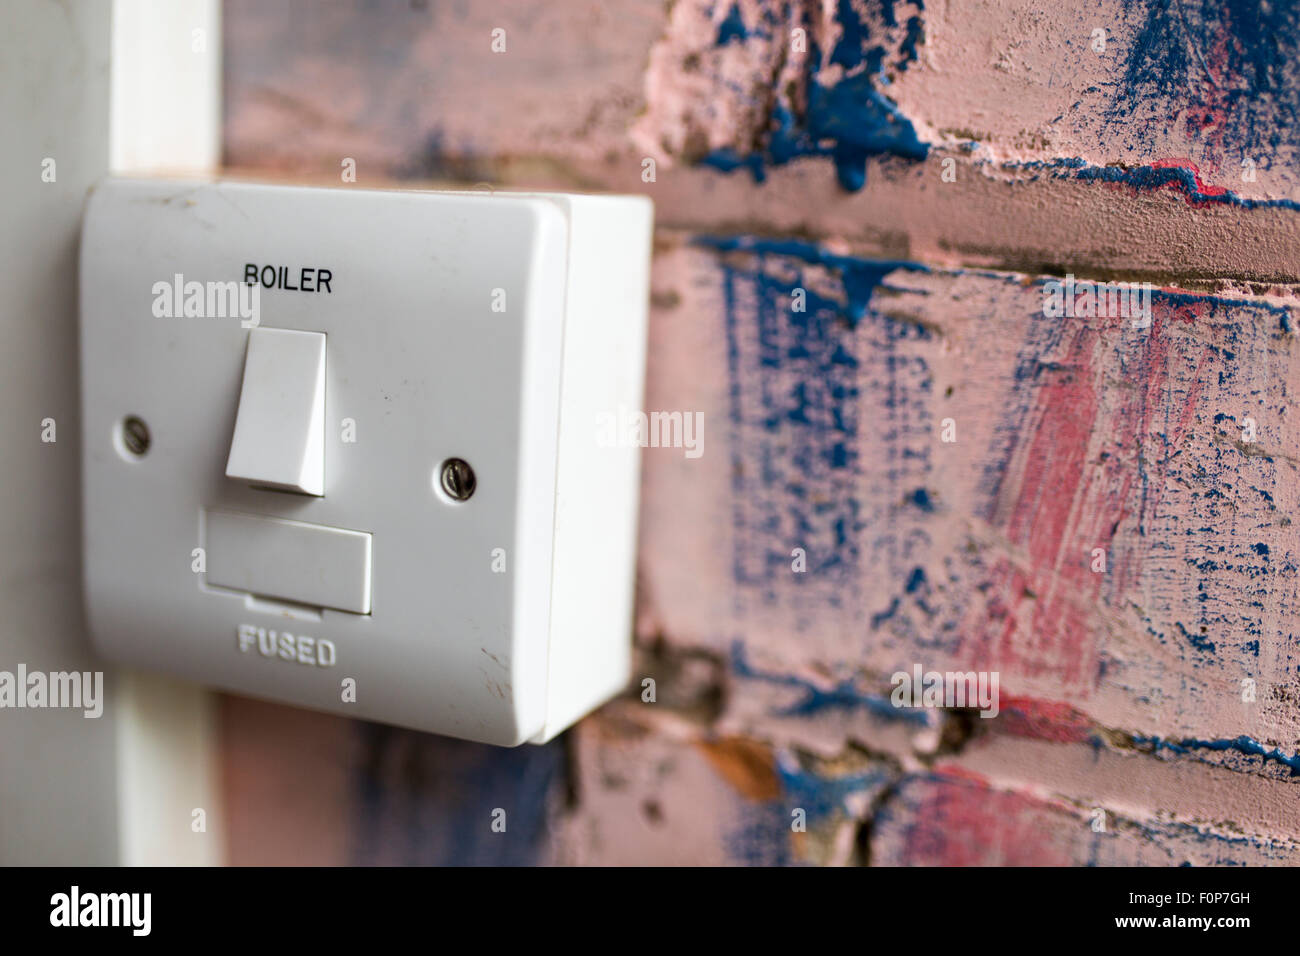 a boiler switch - Stock Image